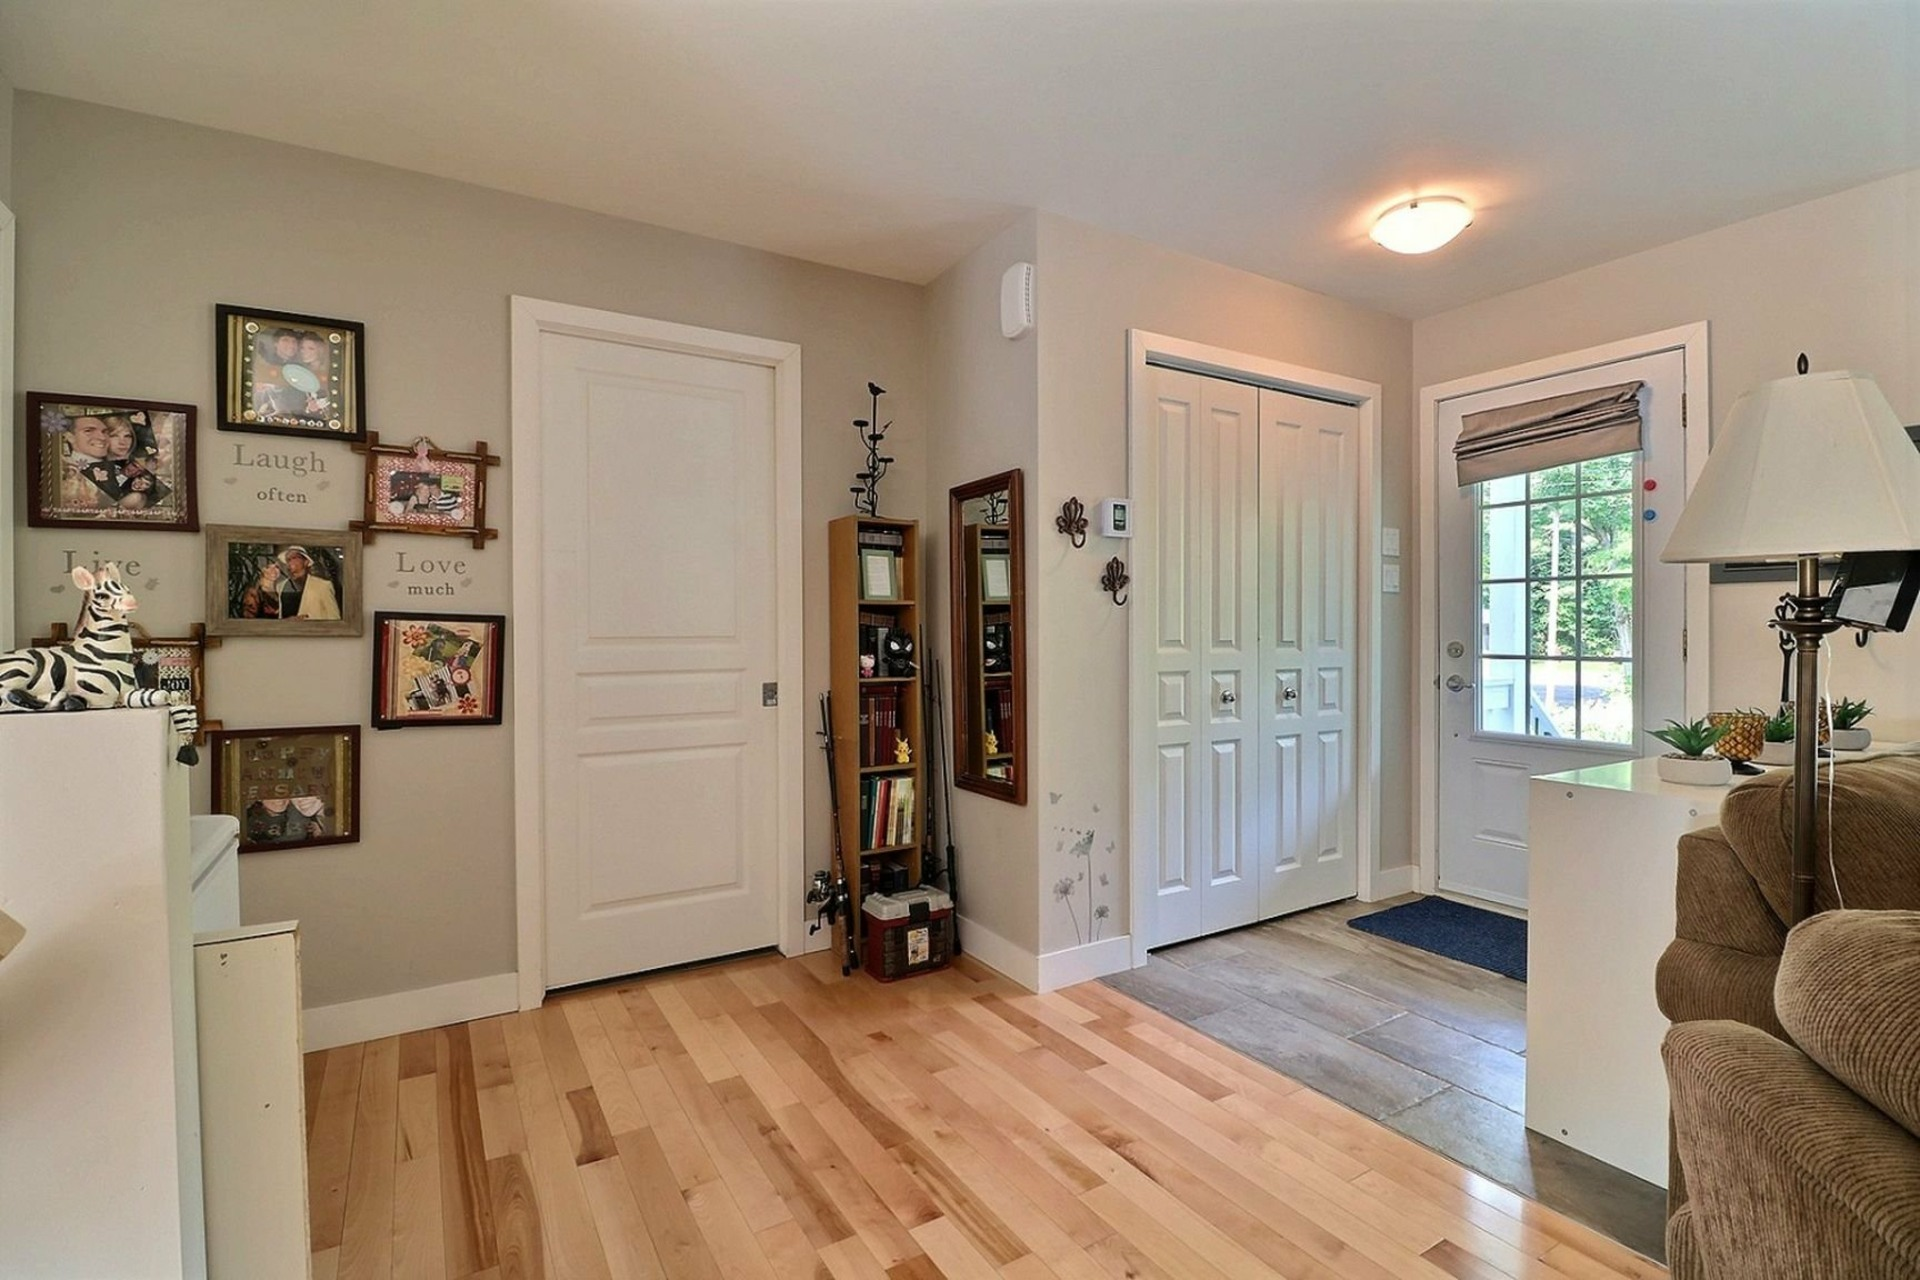 image 5 - House For sale Rawdon - 6 rooms